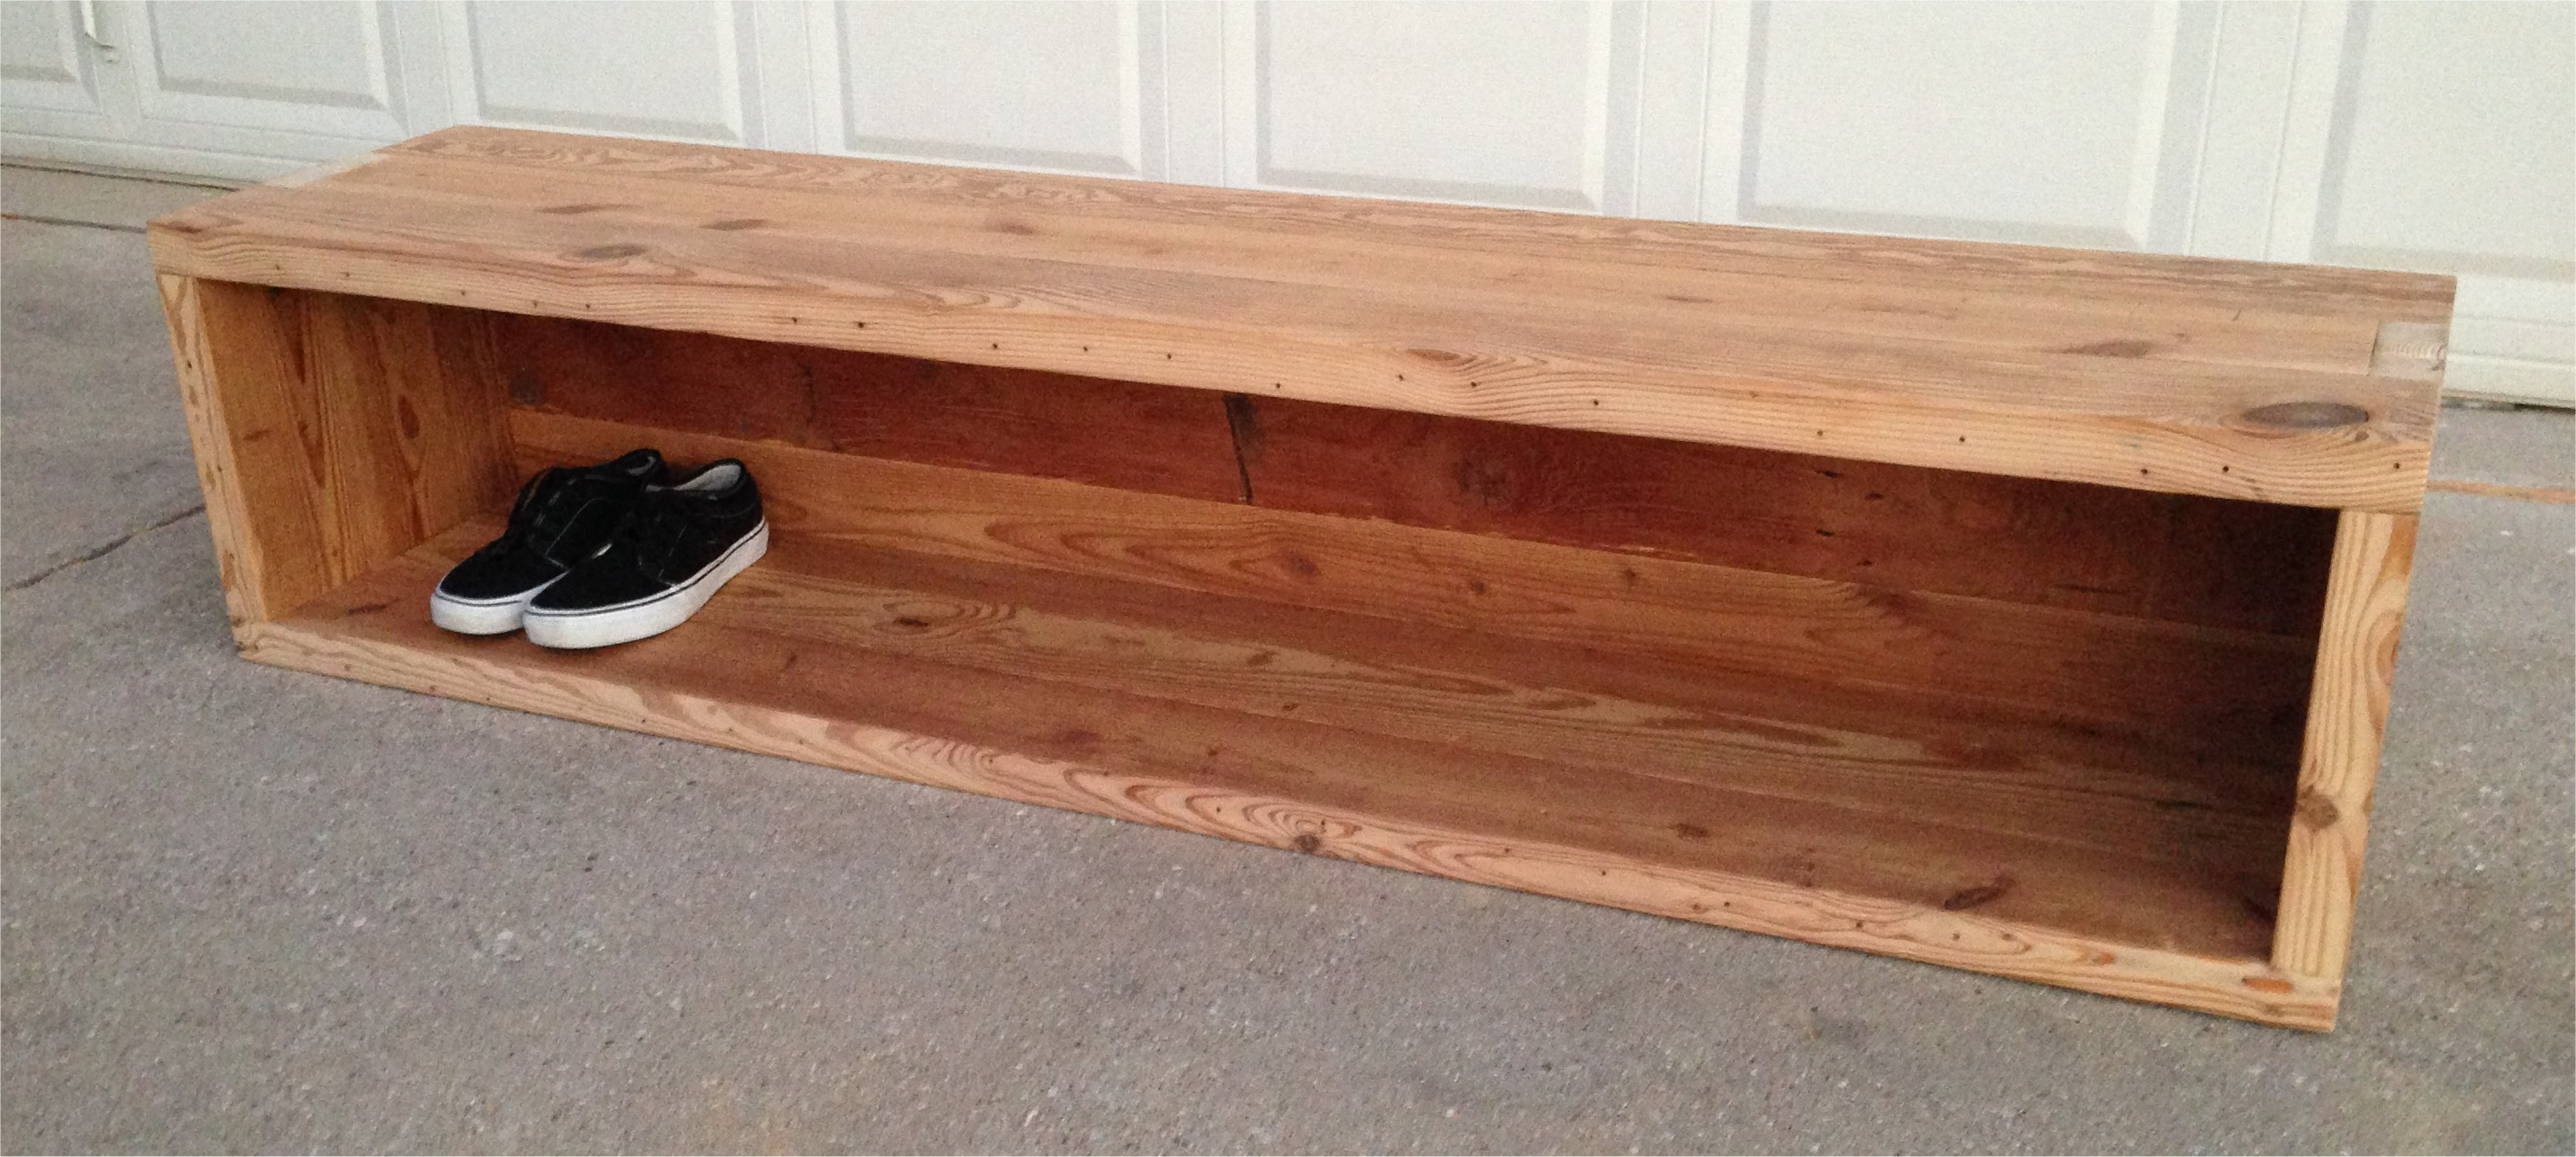 Reclaimed Storage Bench The Grain